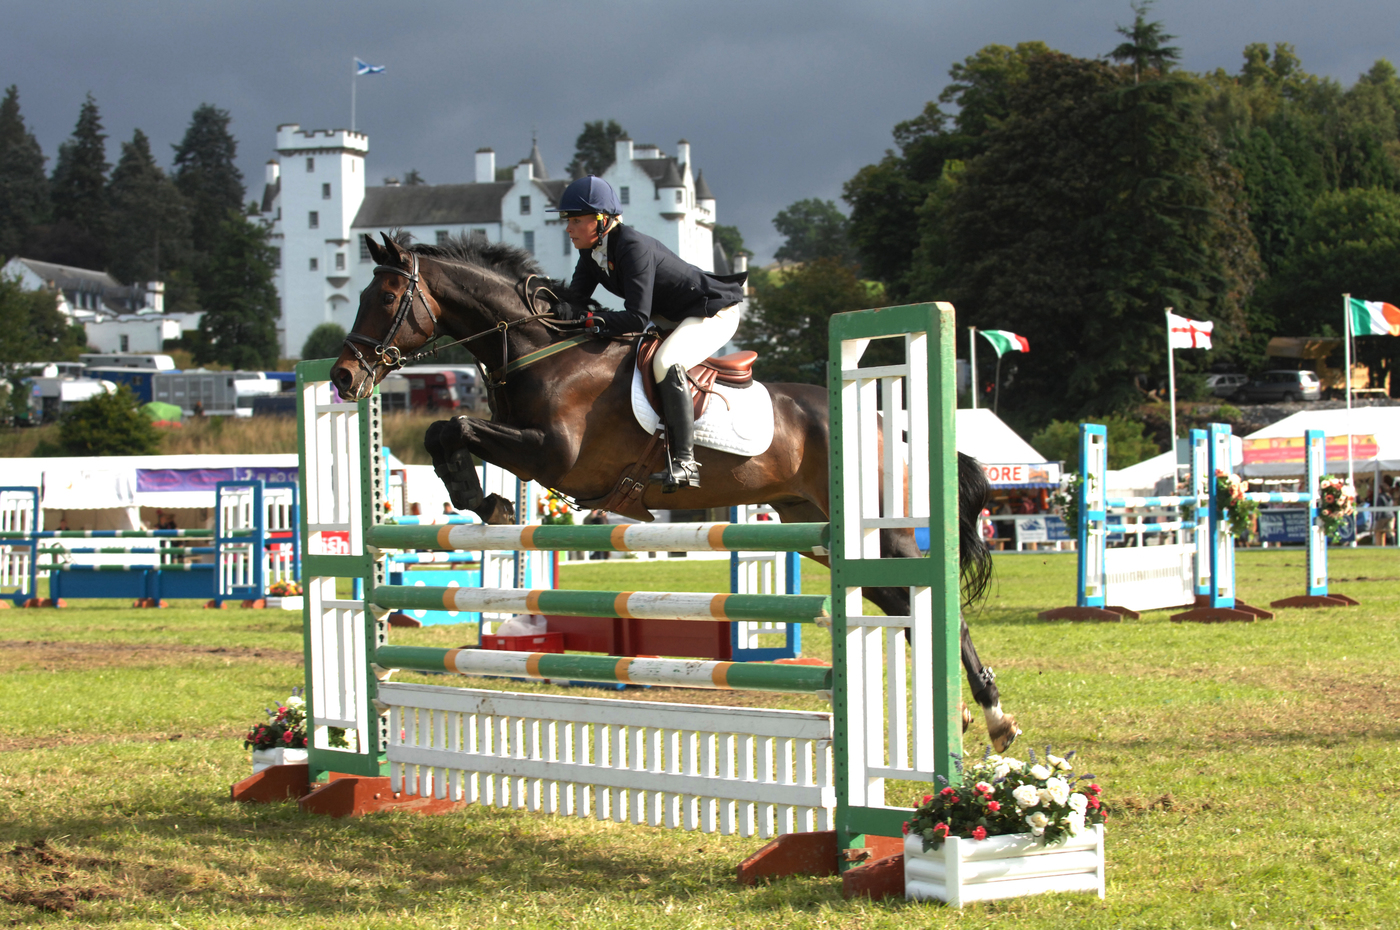 Longines Eventing Event: Longines announces its partnership with the Longines FEI European Eventing Championship 2015 at Blair Castle 1